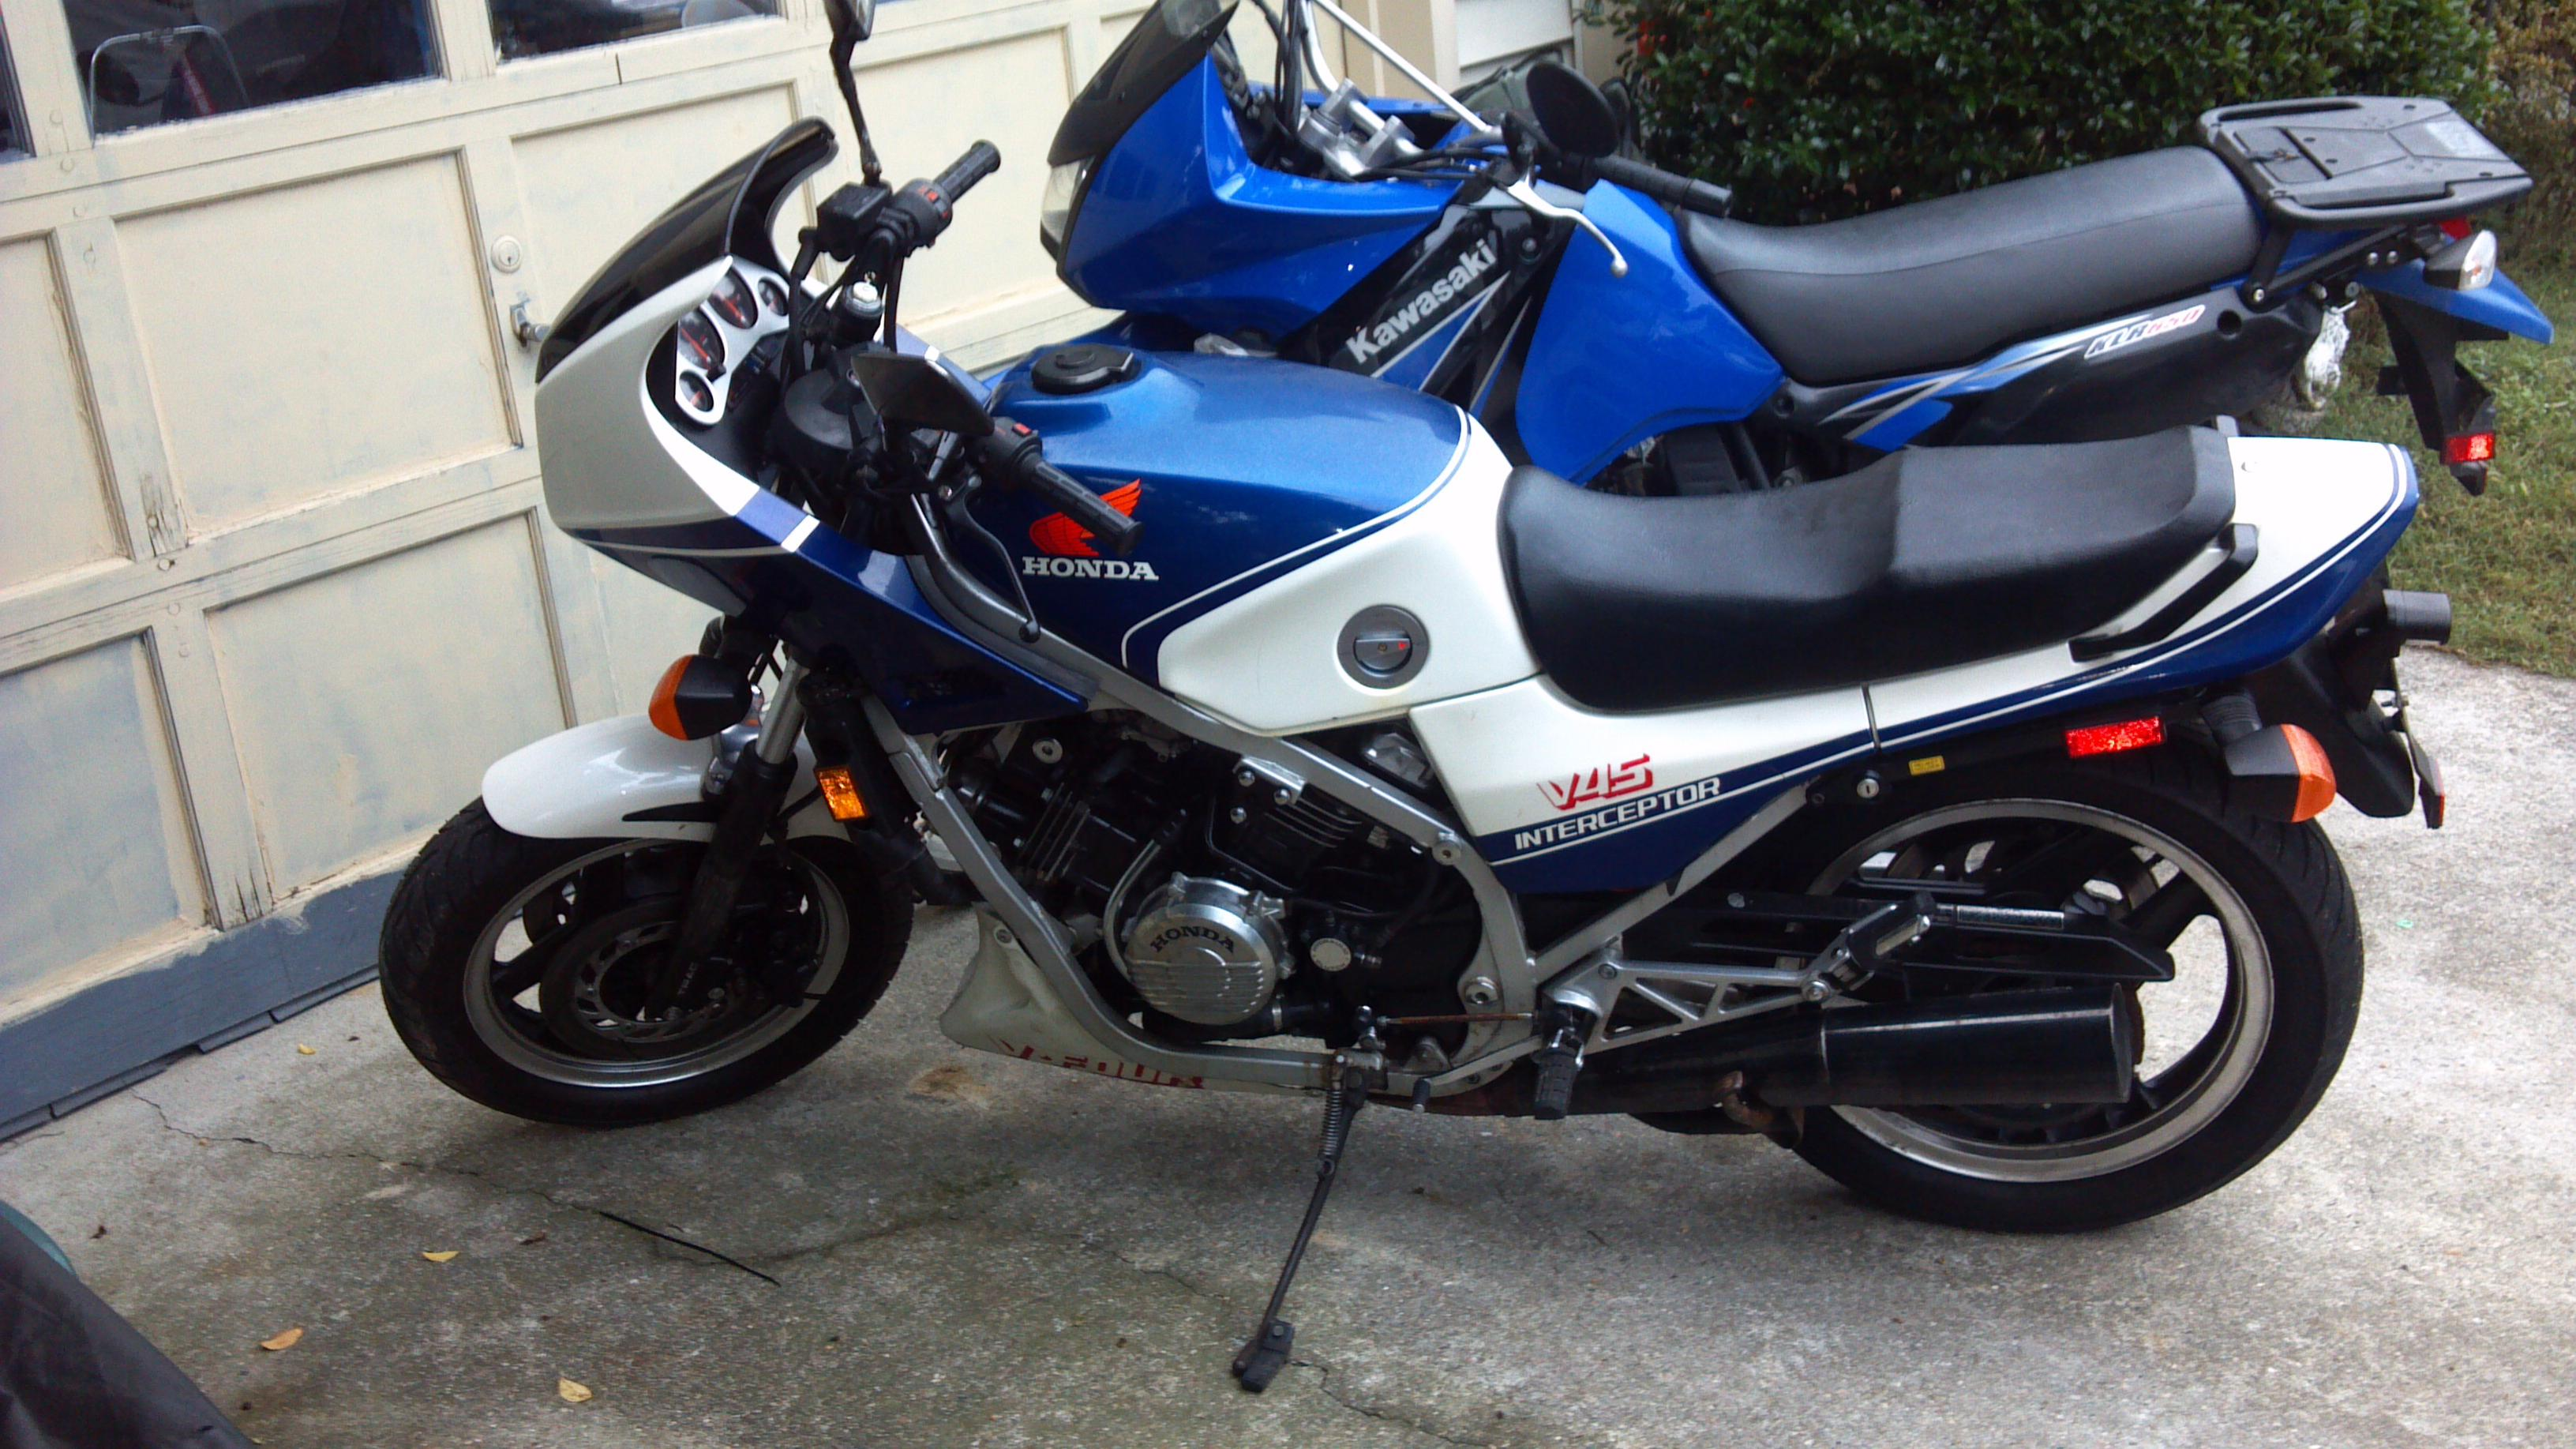 post-pic-your-favorite-bike-mid-80s-early-90s-2012-10-10_07-54-21_487.jpg